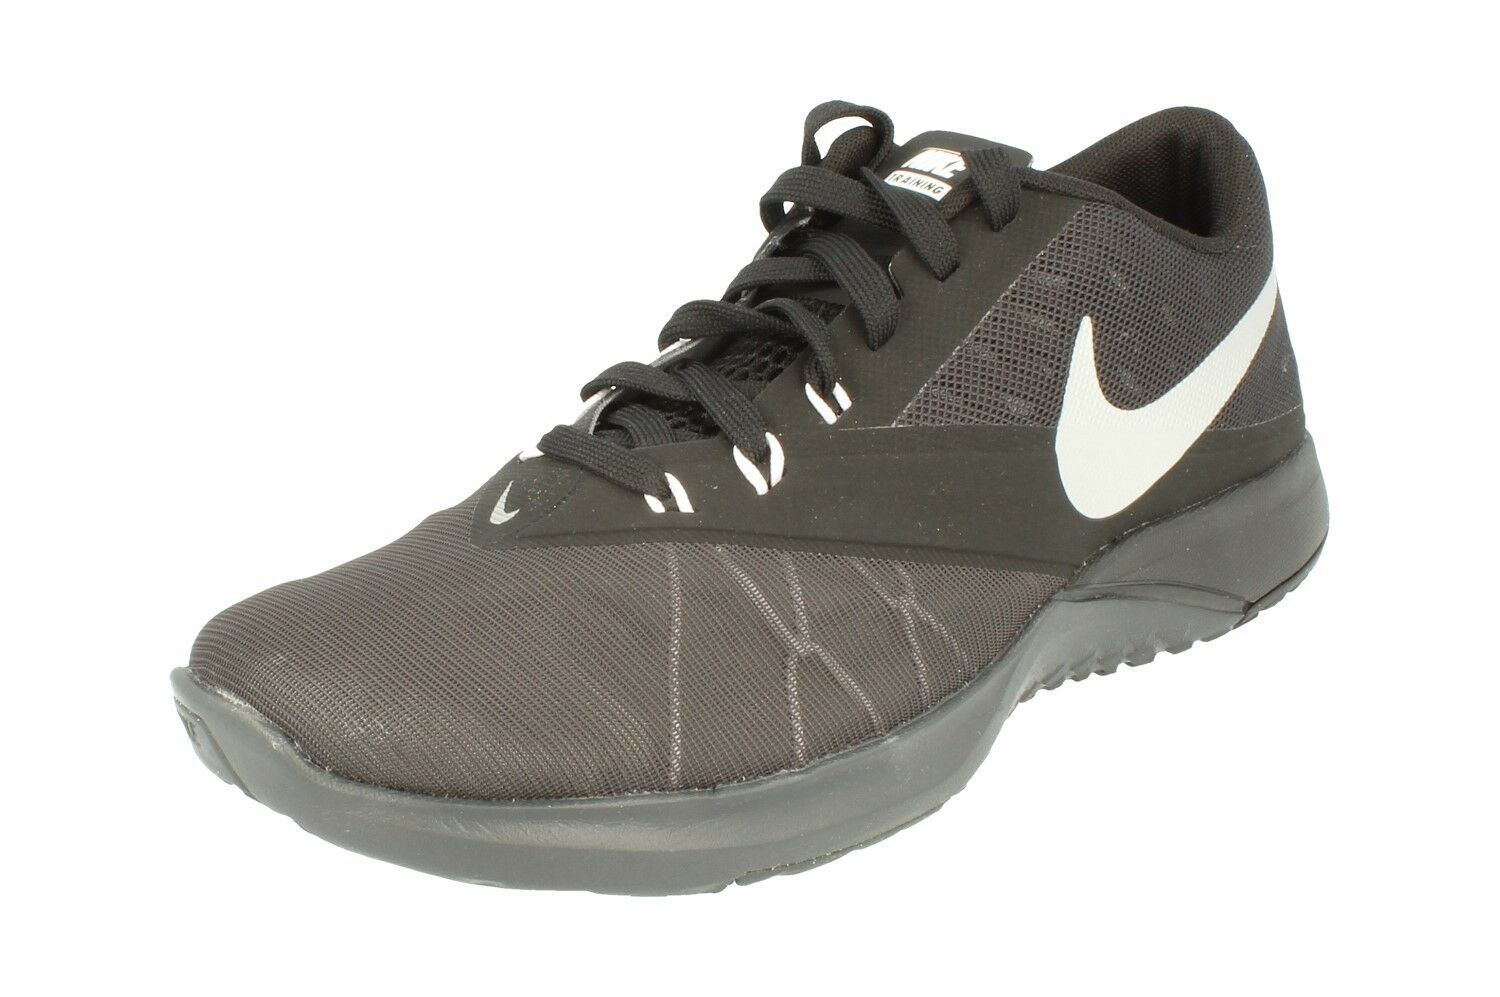 Nike Fs Lite Trainer 4 Mens Running Trainers 844794 Sneakers Shoes 001